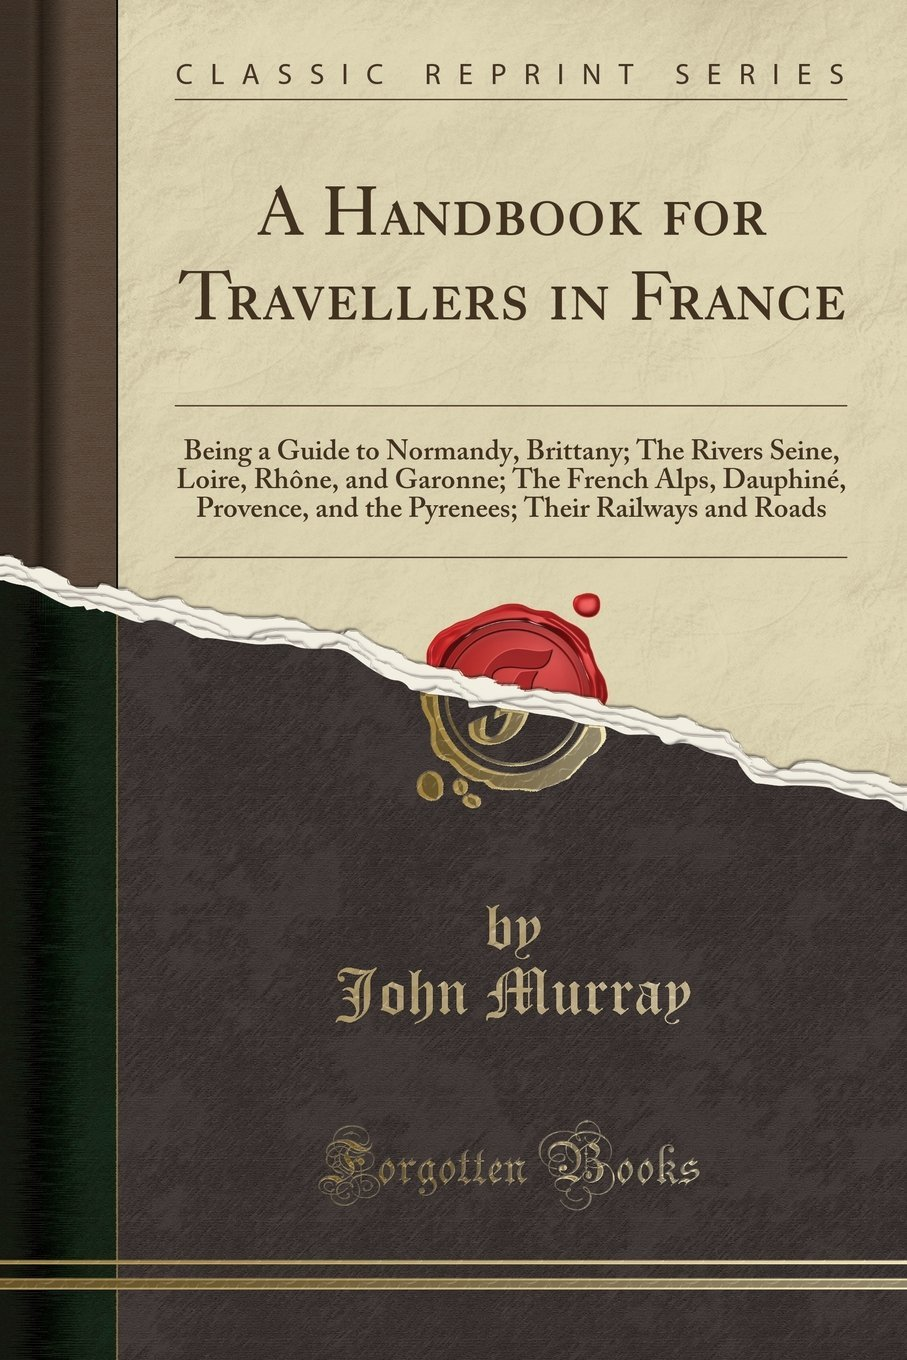 A Handbook for Travellers in France: Being a Guide